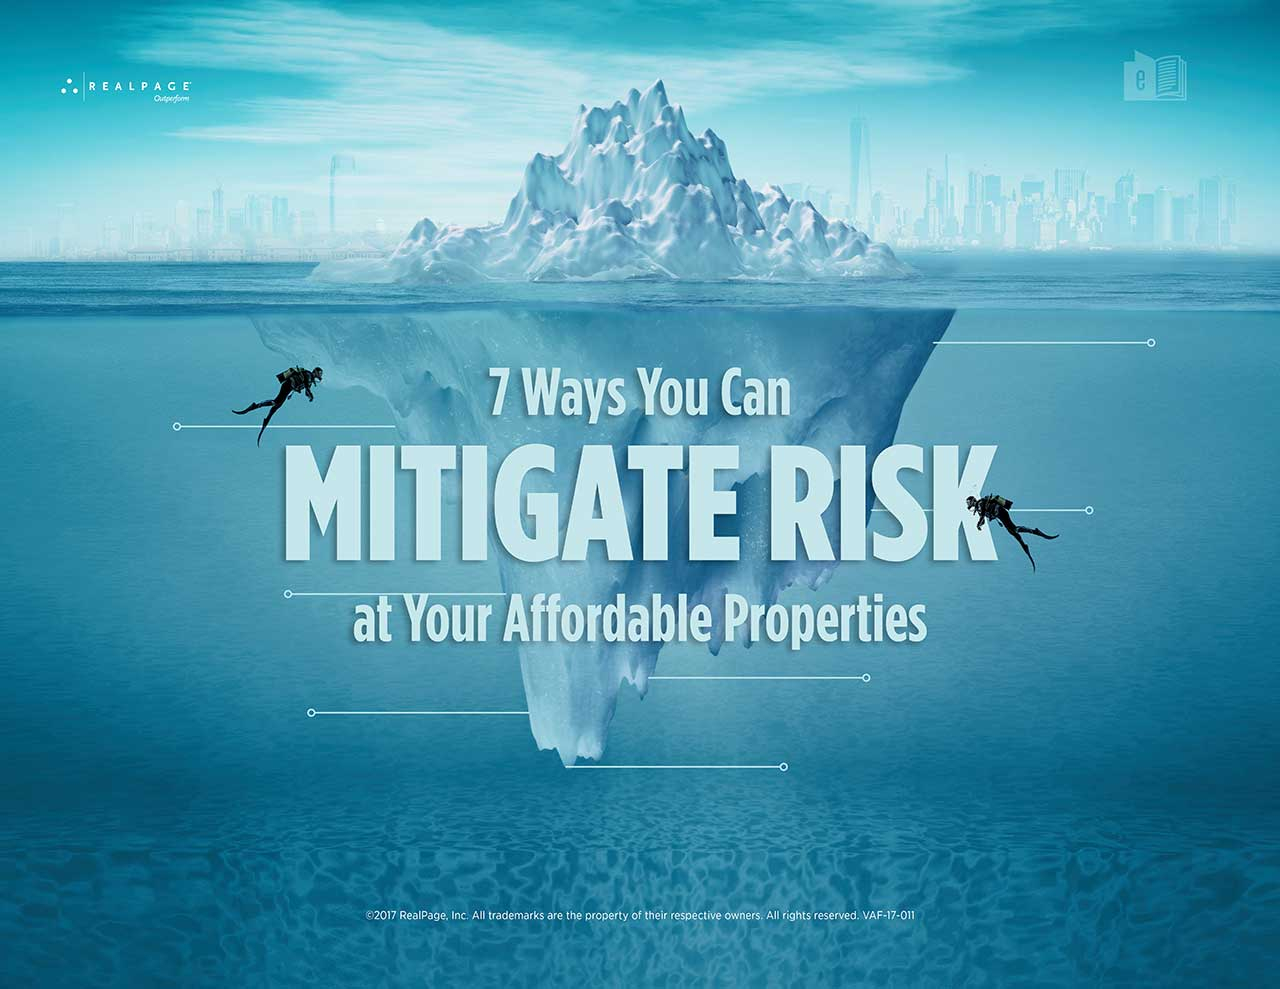 insights to mitigating risk in affordable housing